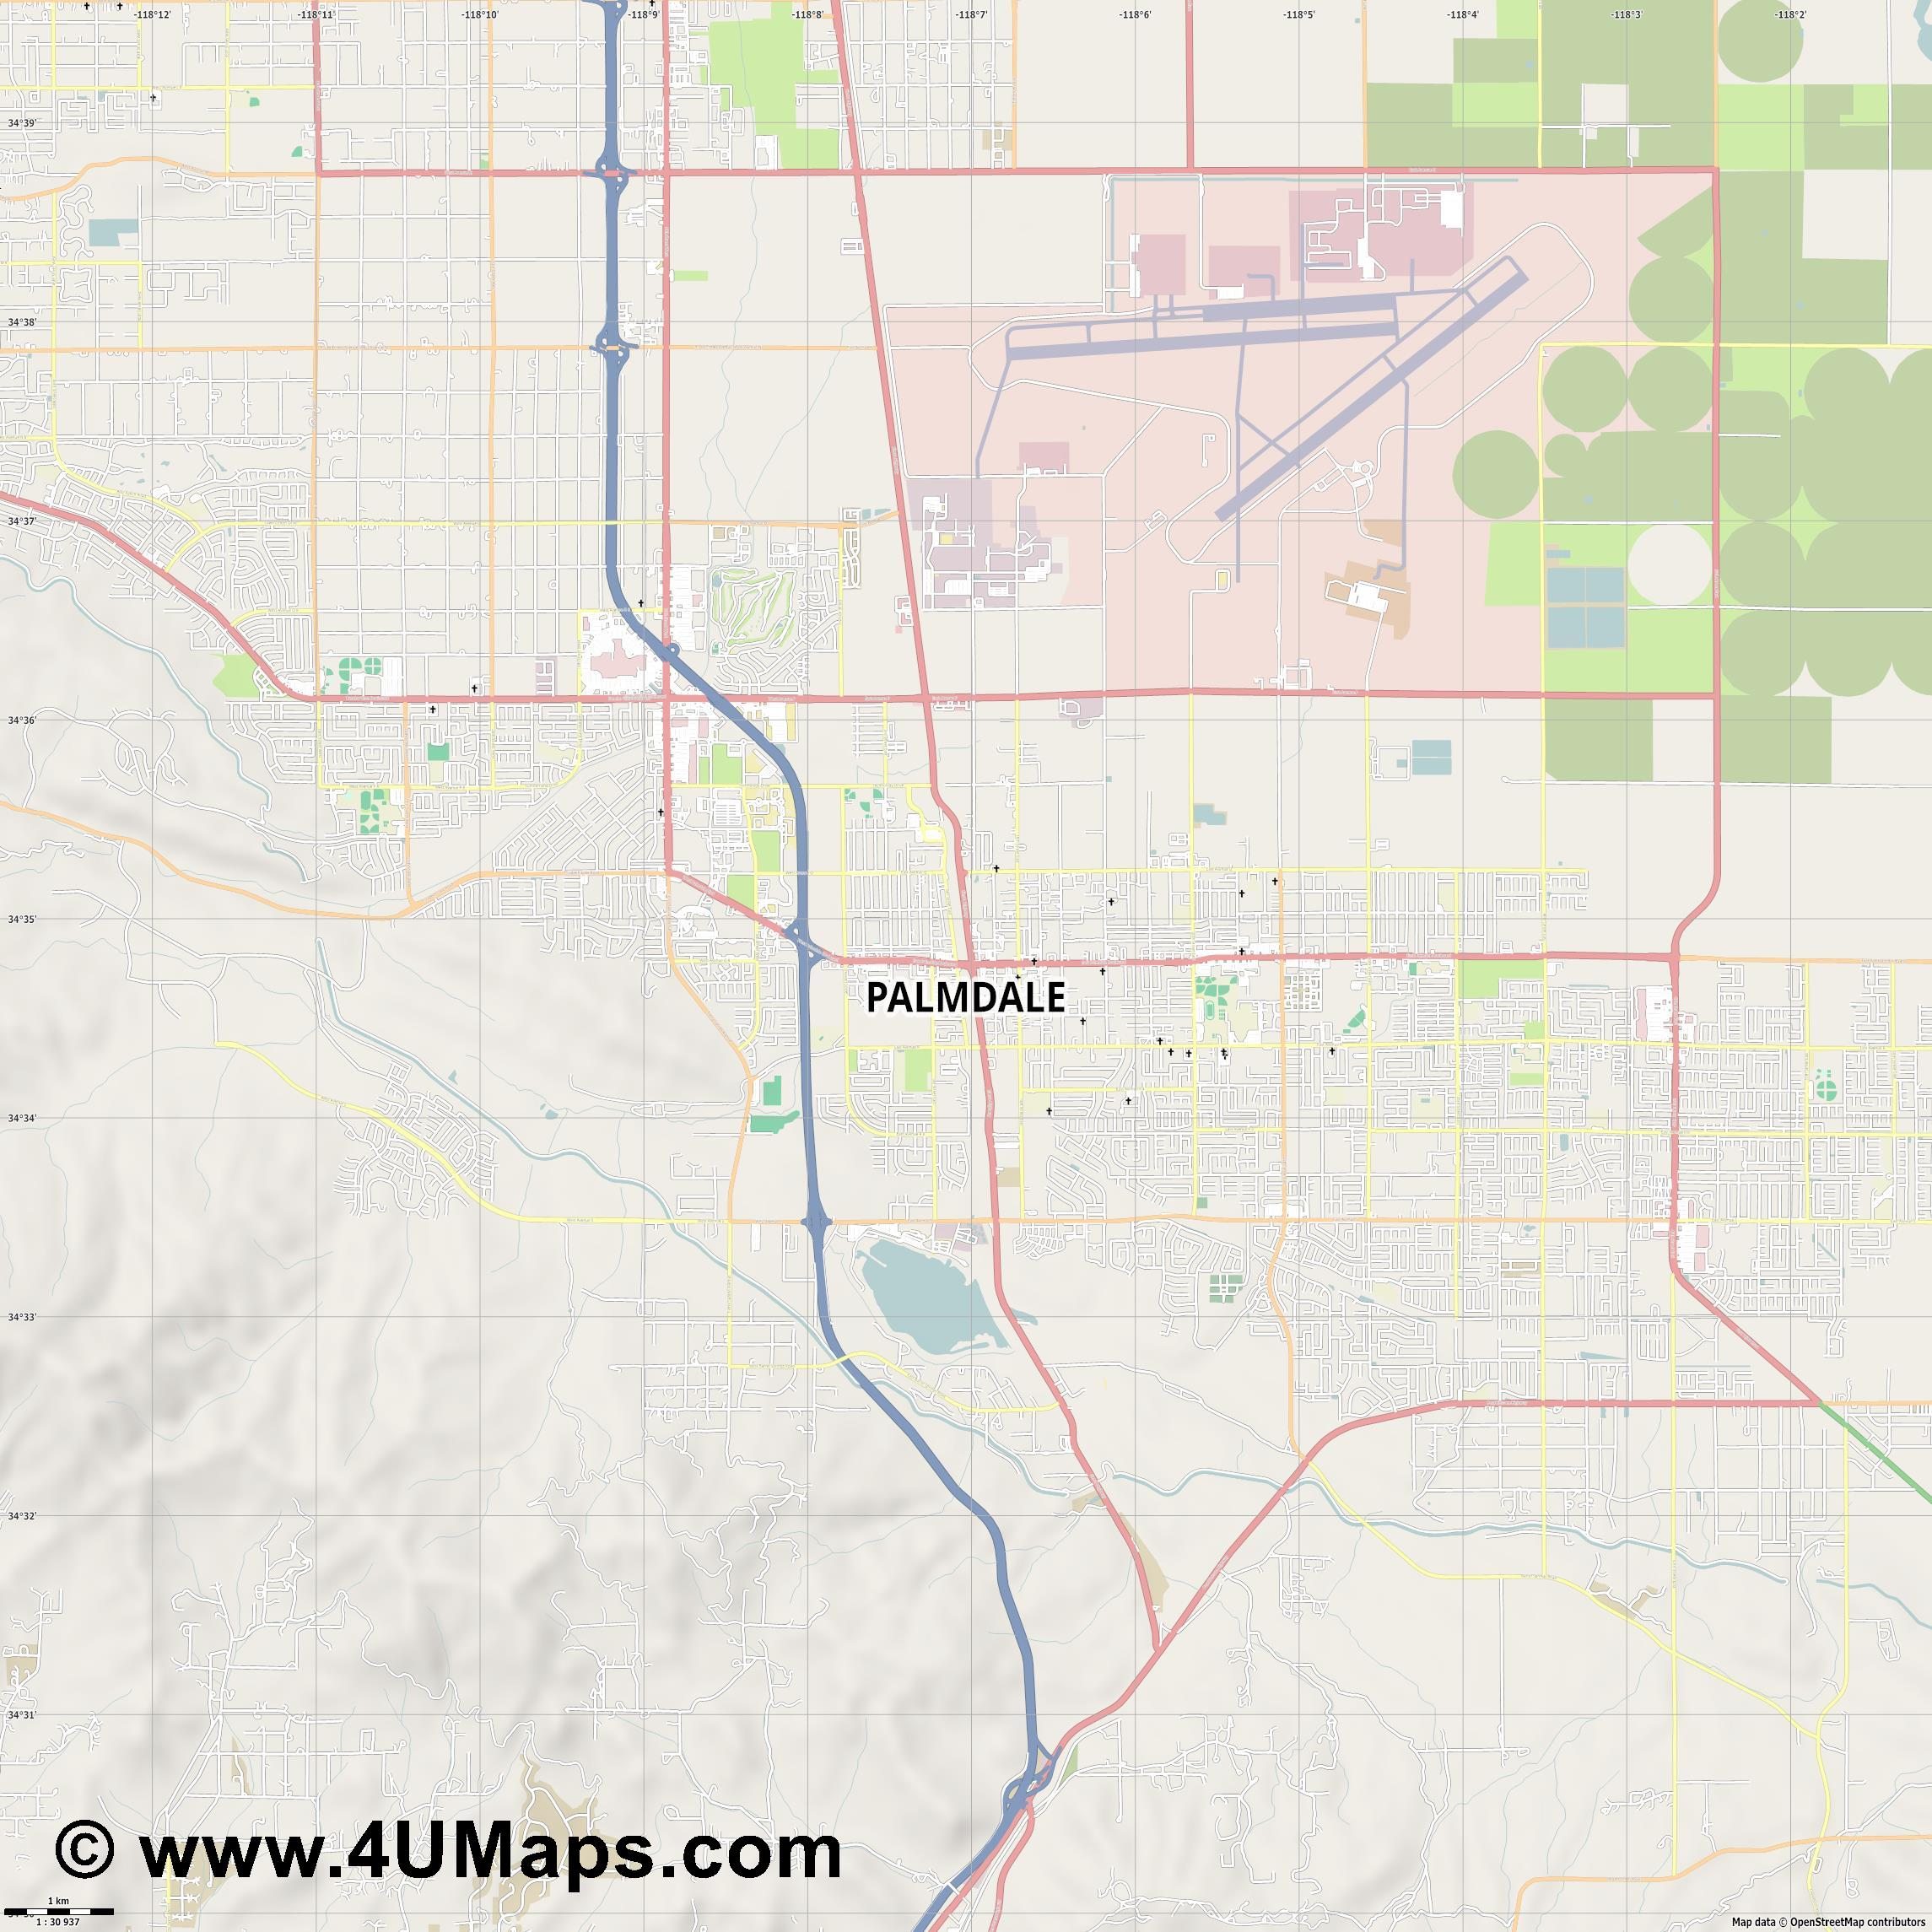 Palmdale  jpg high detail, large area preview vector city map